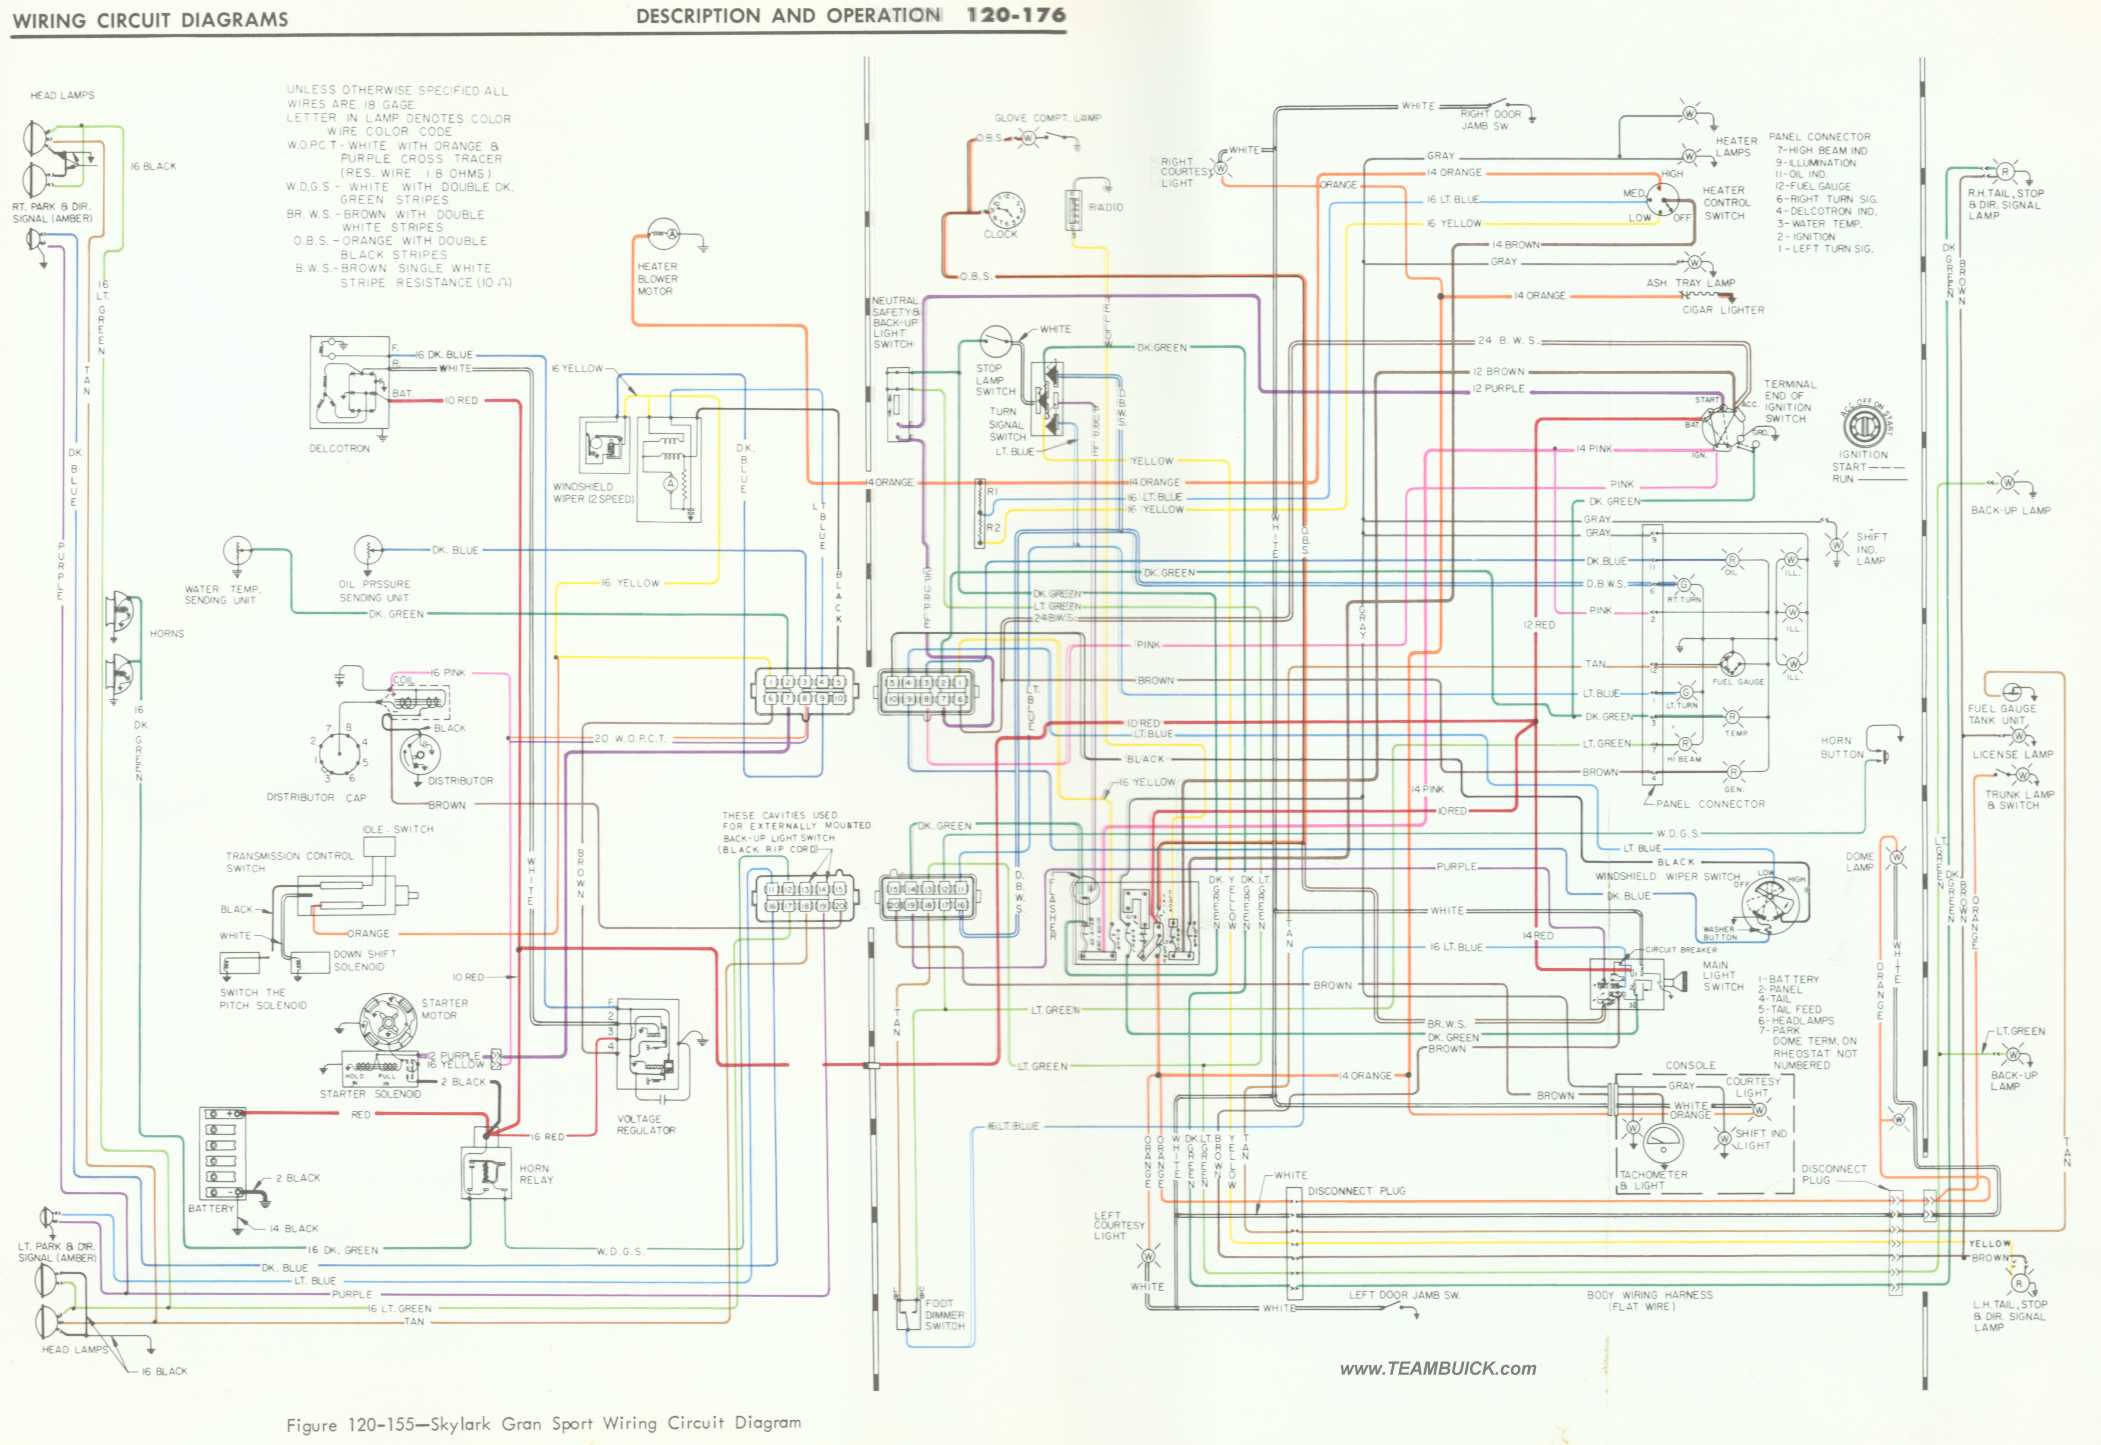 1966 Buick Skylark Gs Wiring Diagram*** 1966 Oldsmobile Cutlass 1966 Buick  Skylark Wiring Diagram